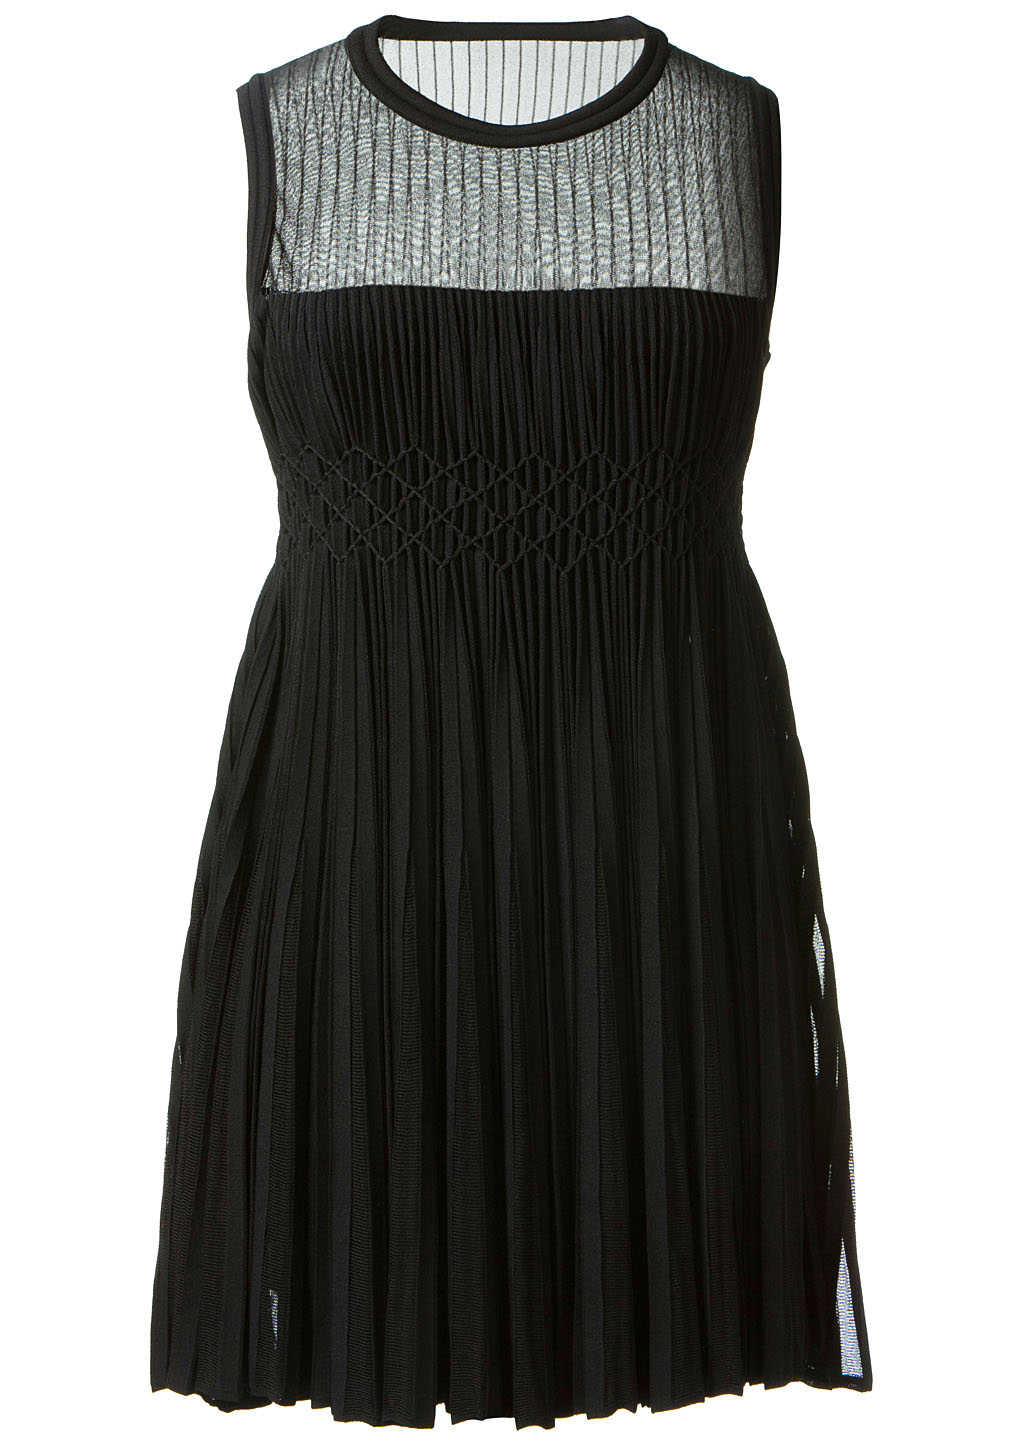 Alaia Dress Serpentine View Fullscreen